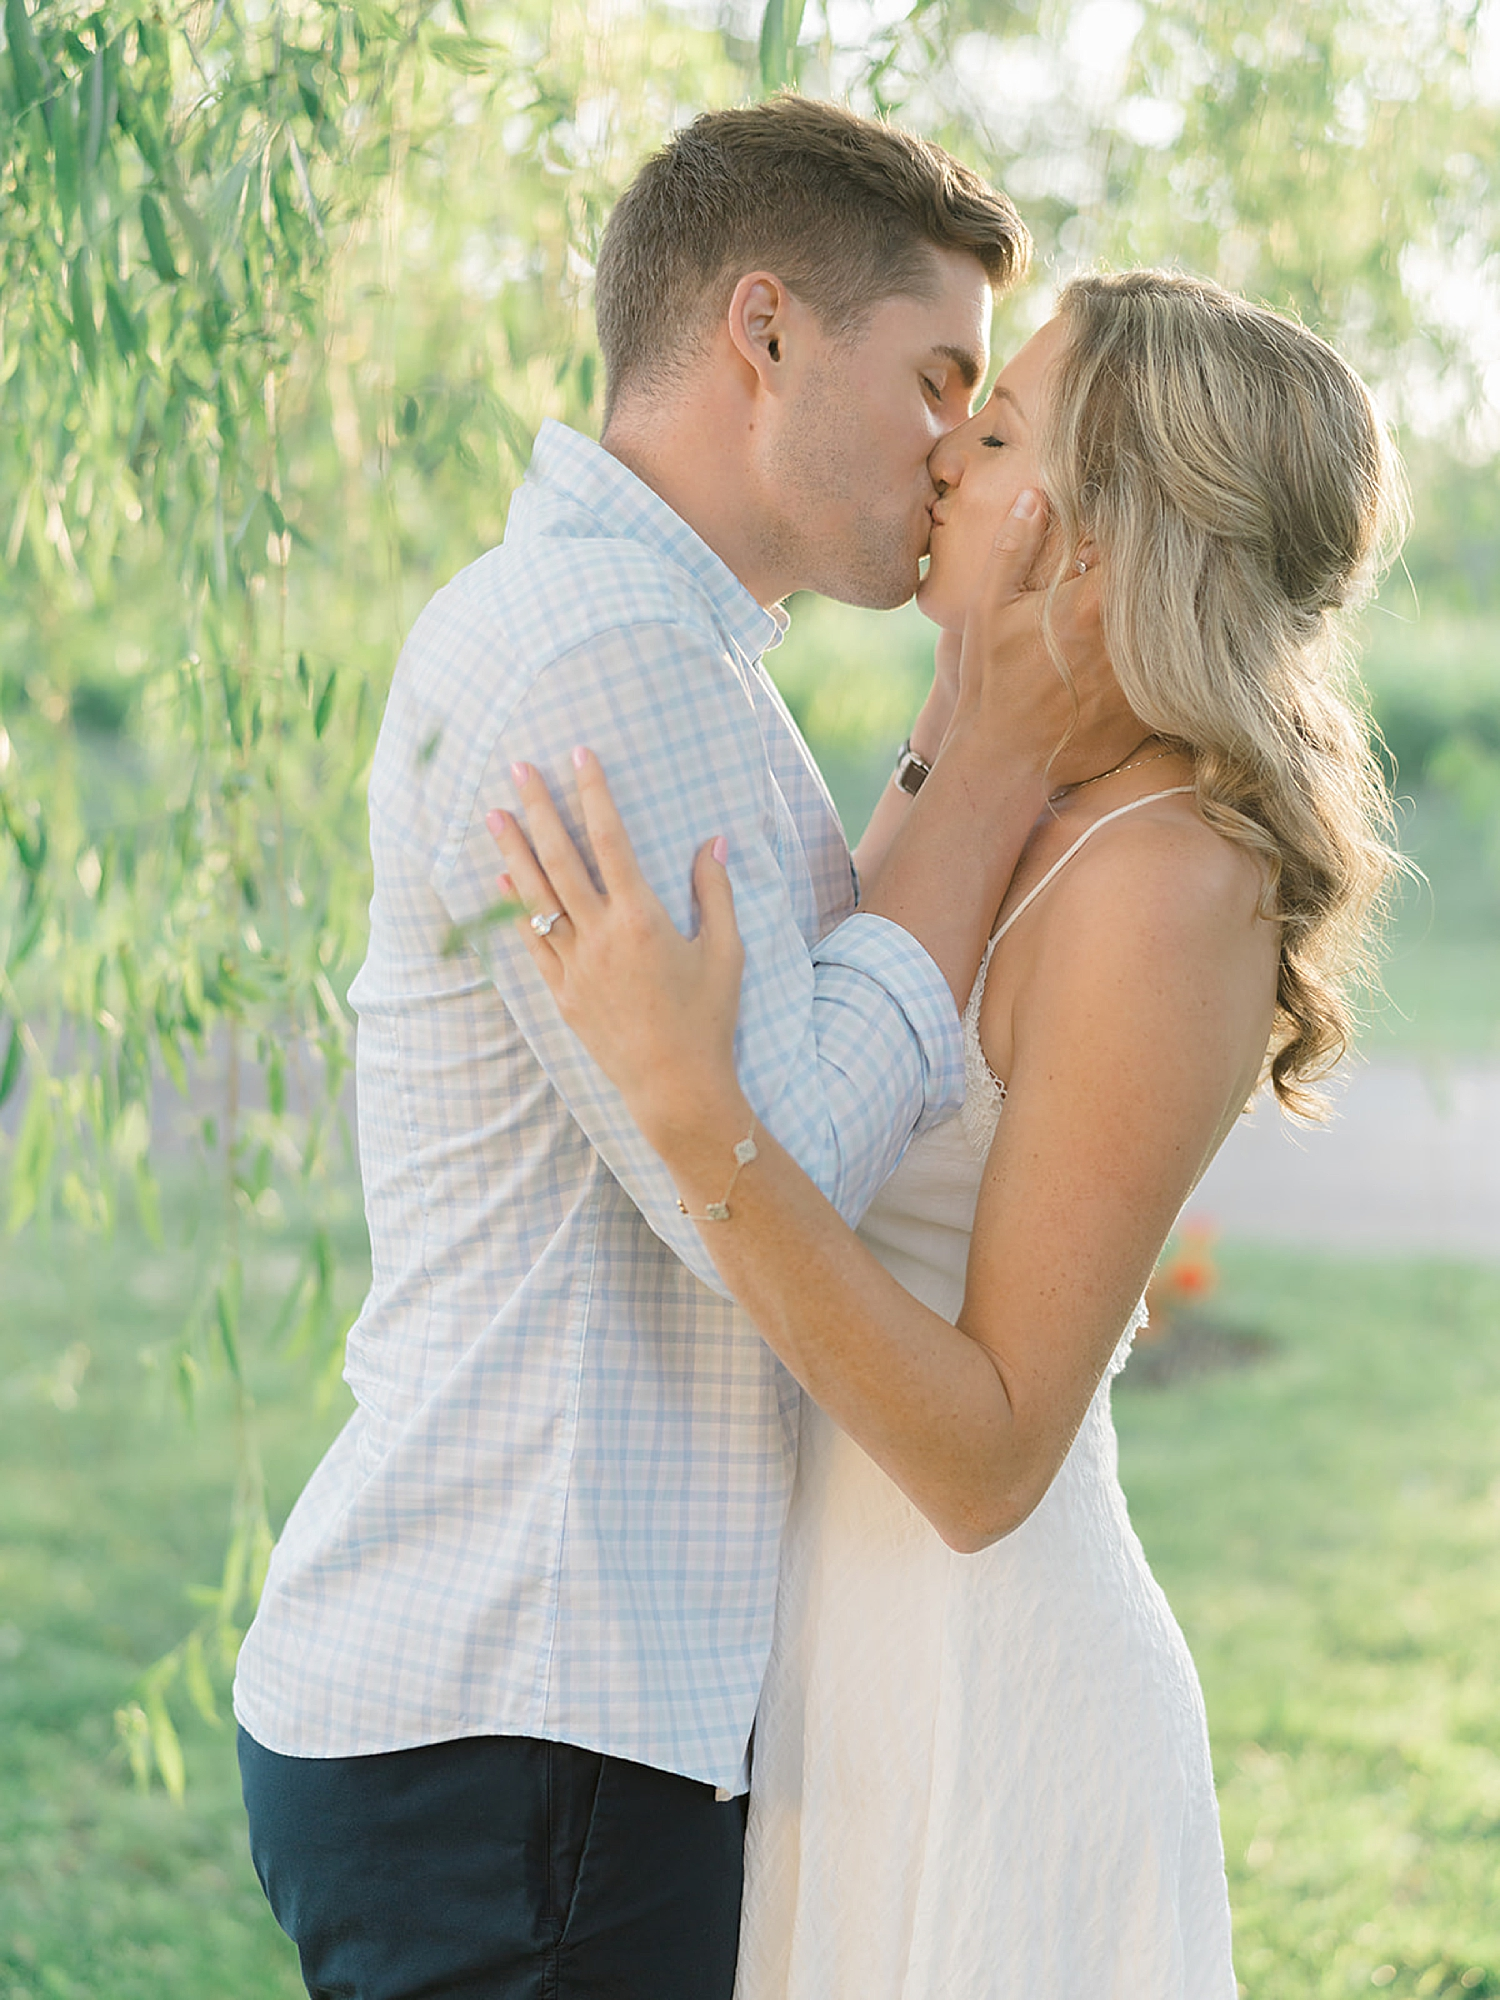 Cape May NJ Engagement Photography by Magdalena Studios 0008.